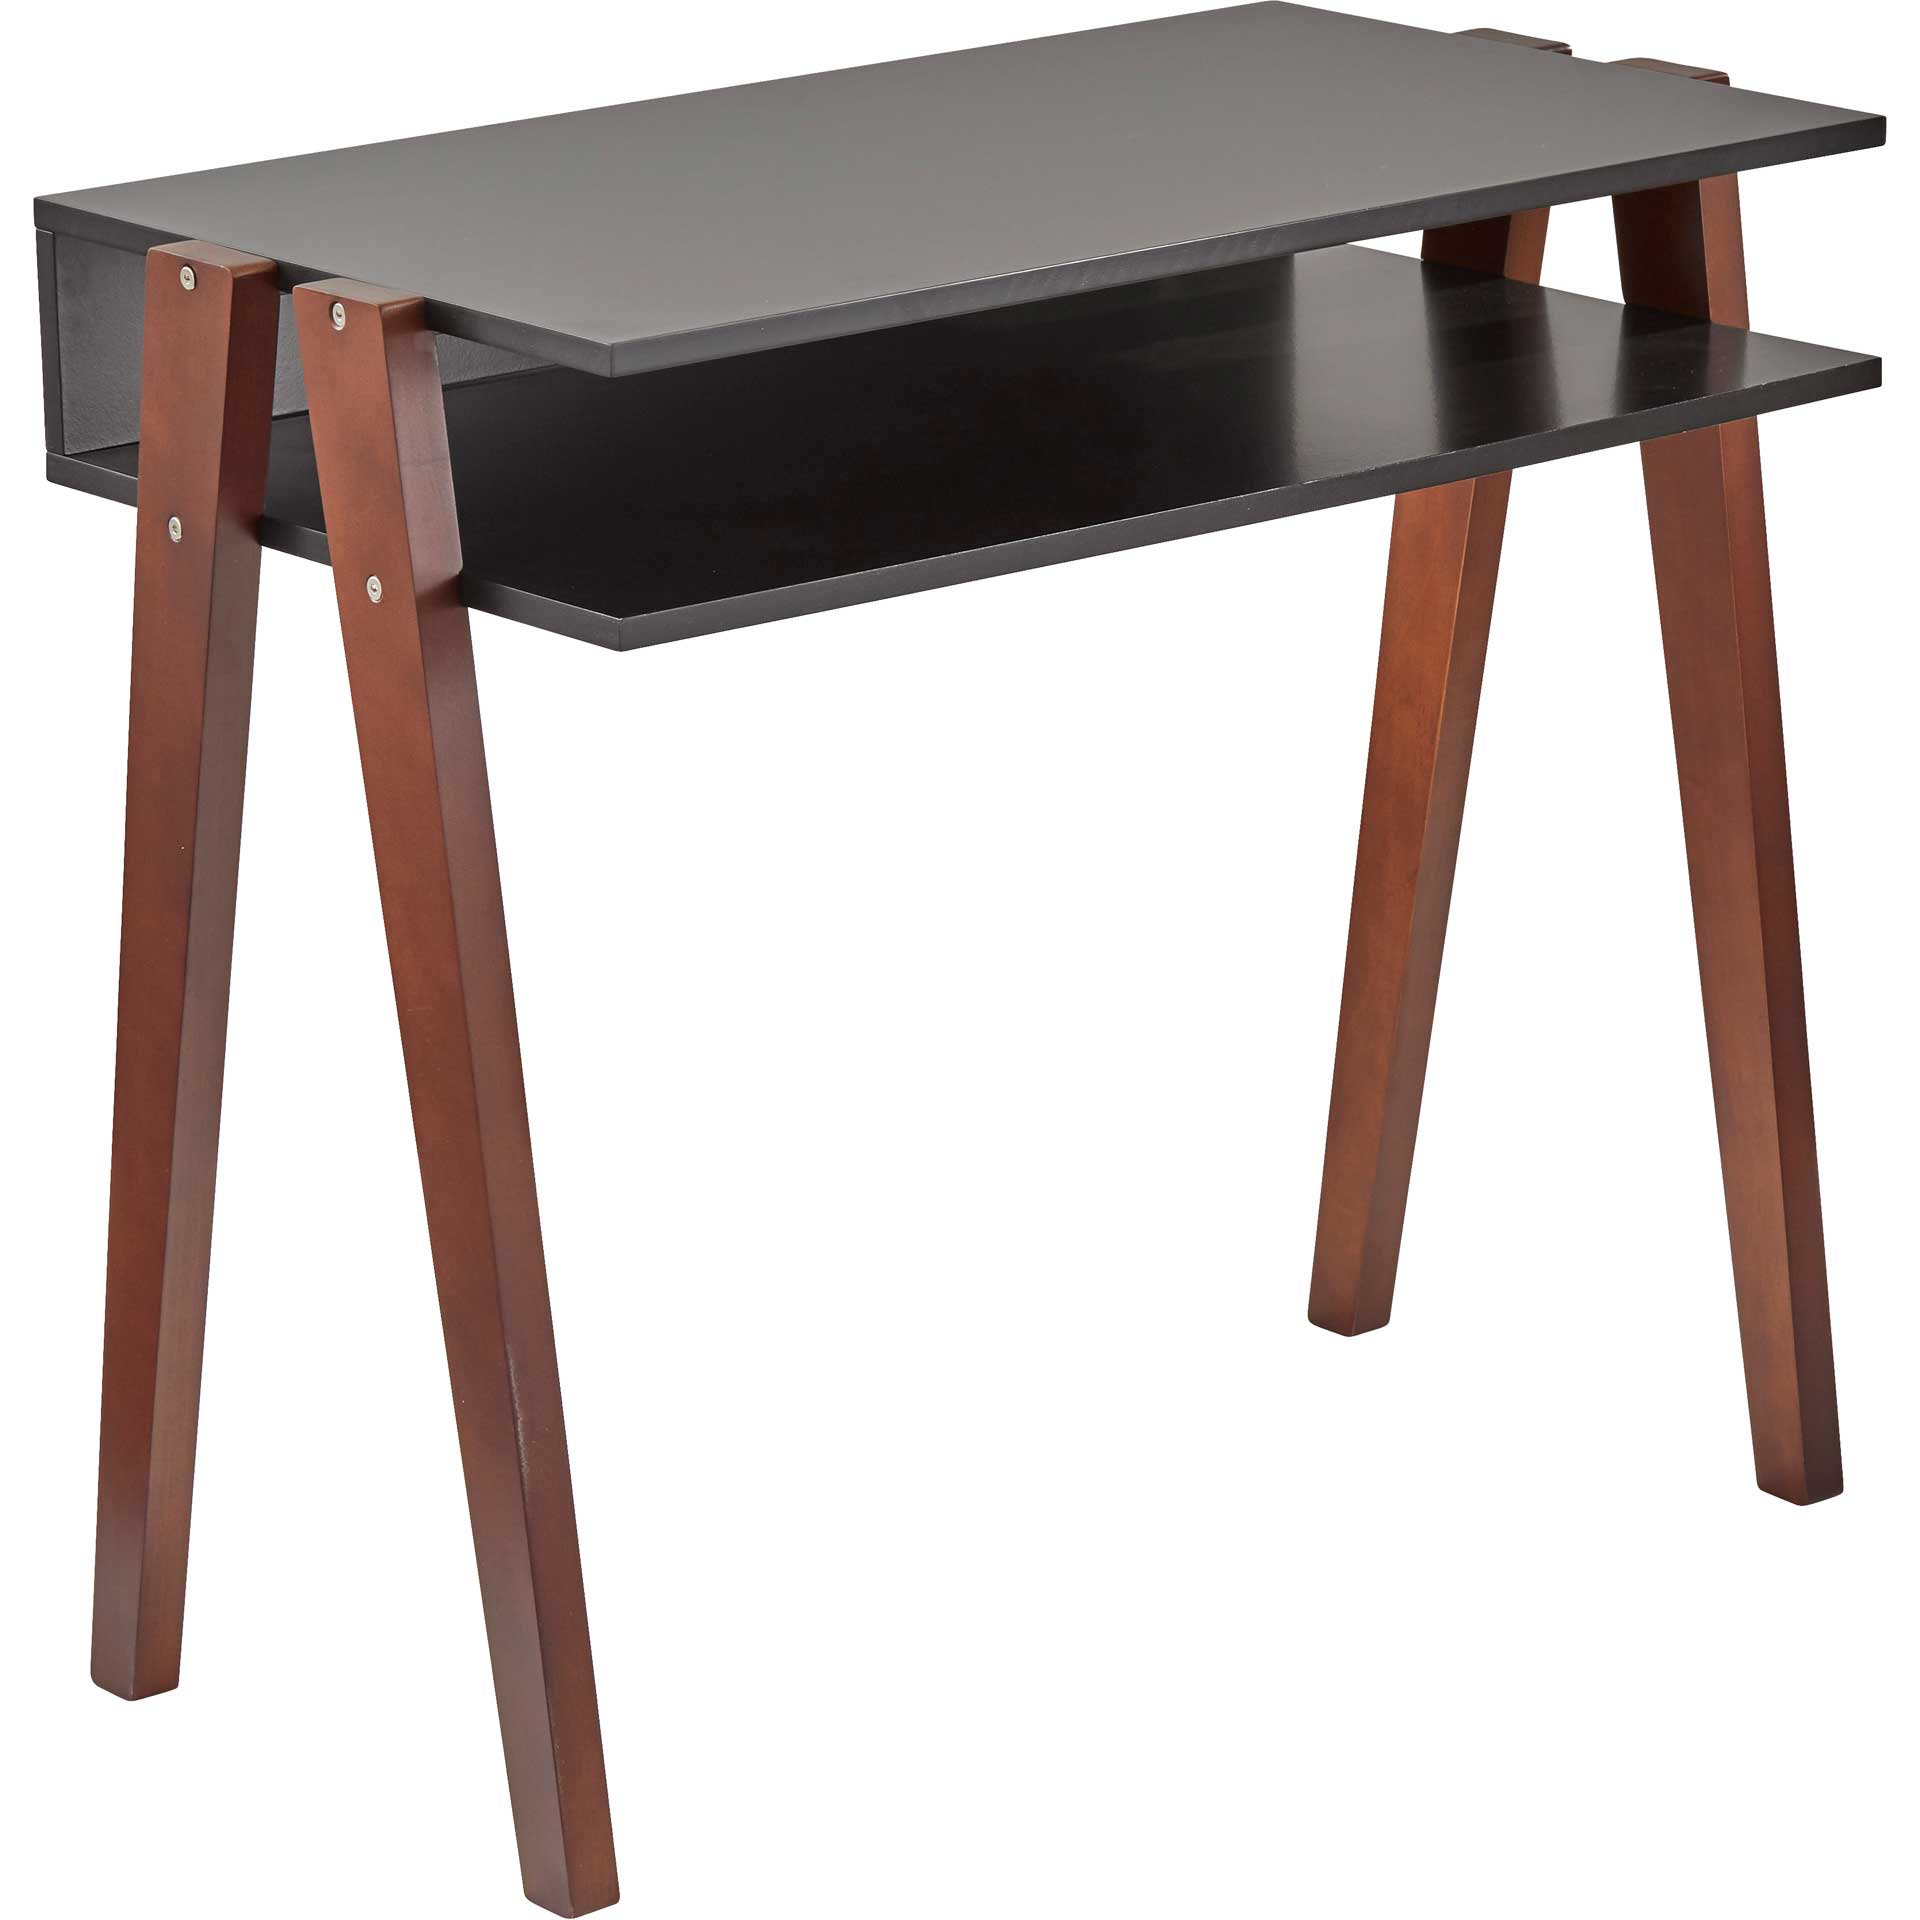 Laon Desk Black/Walnut